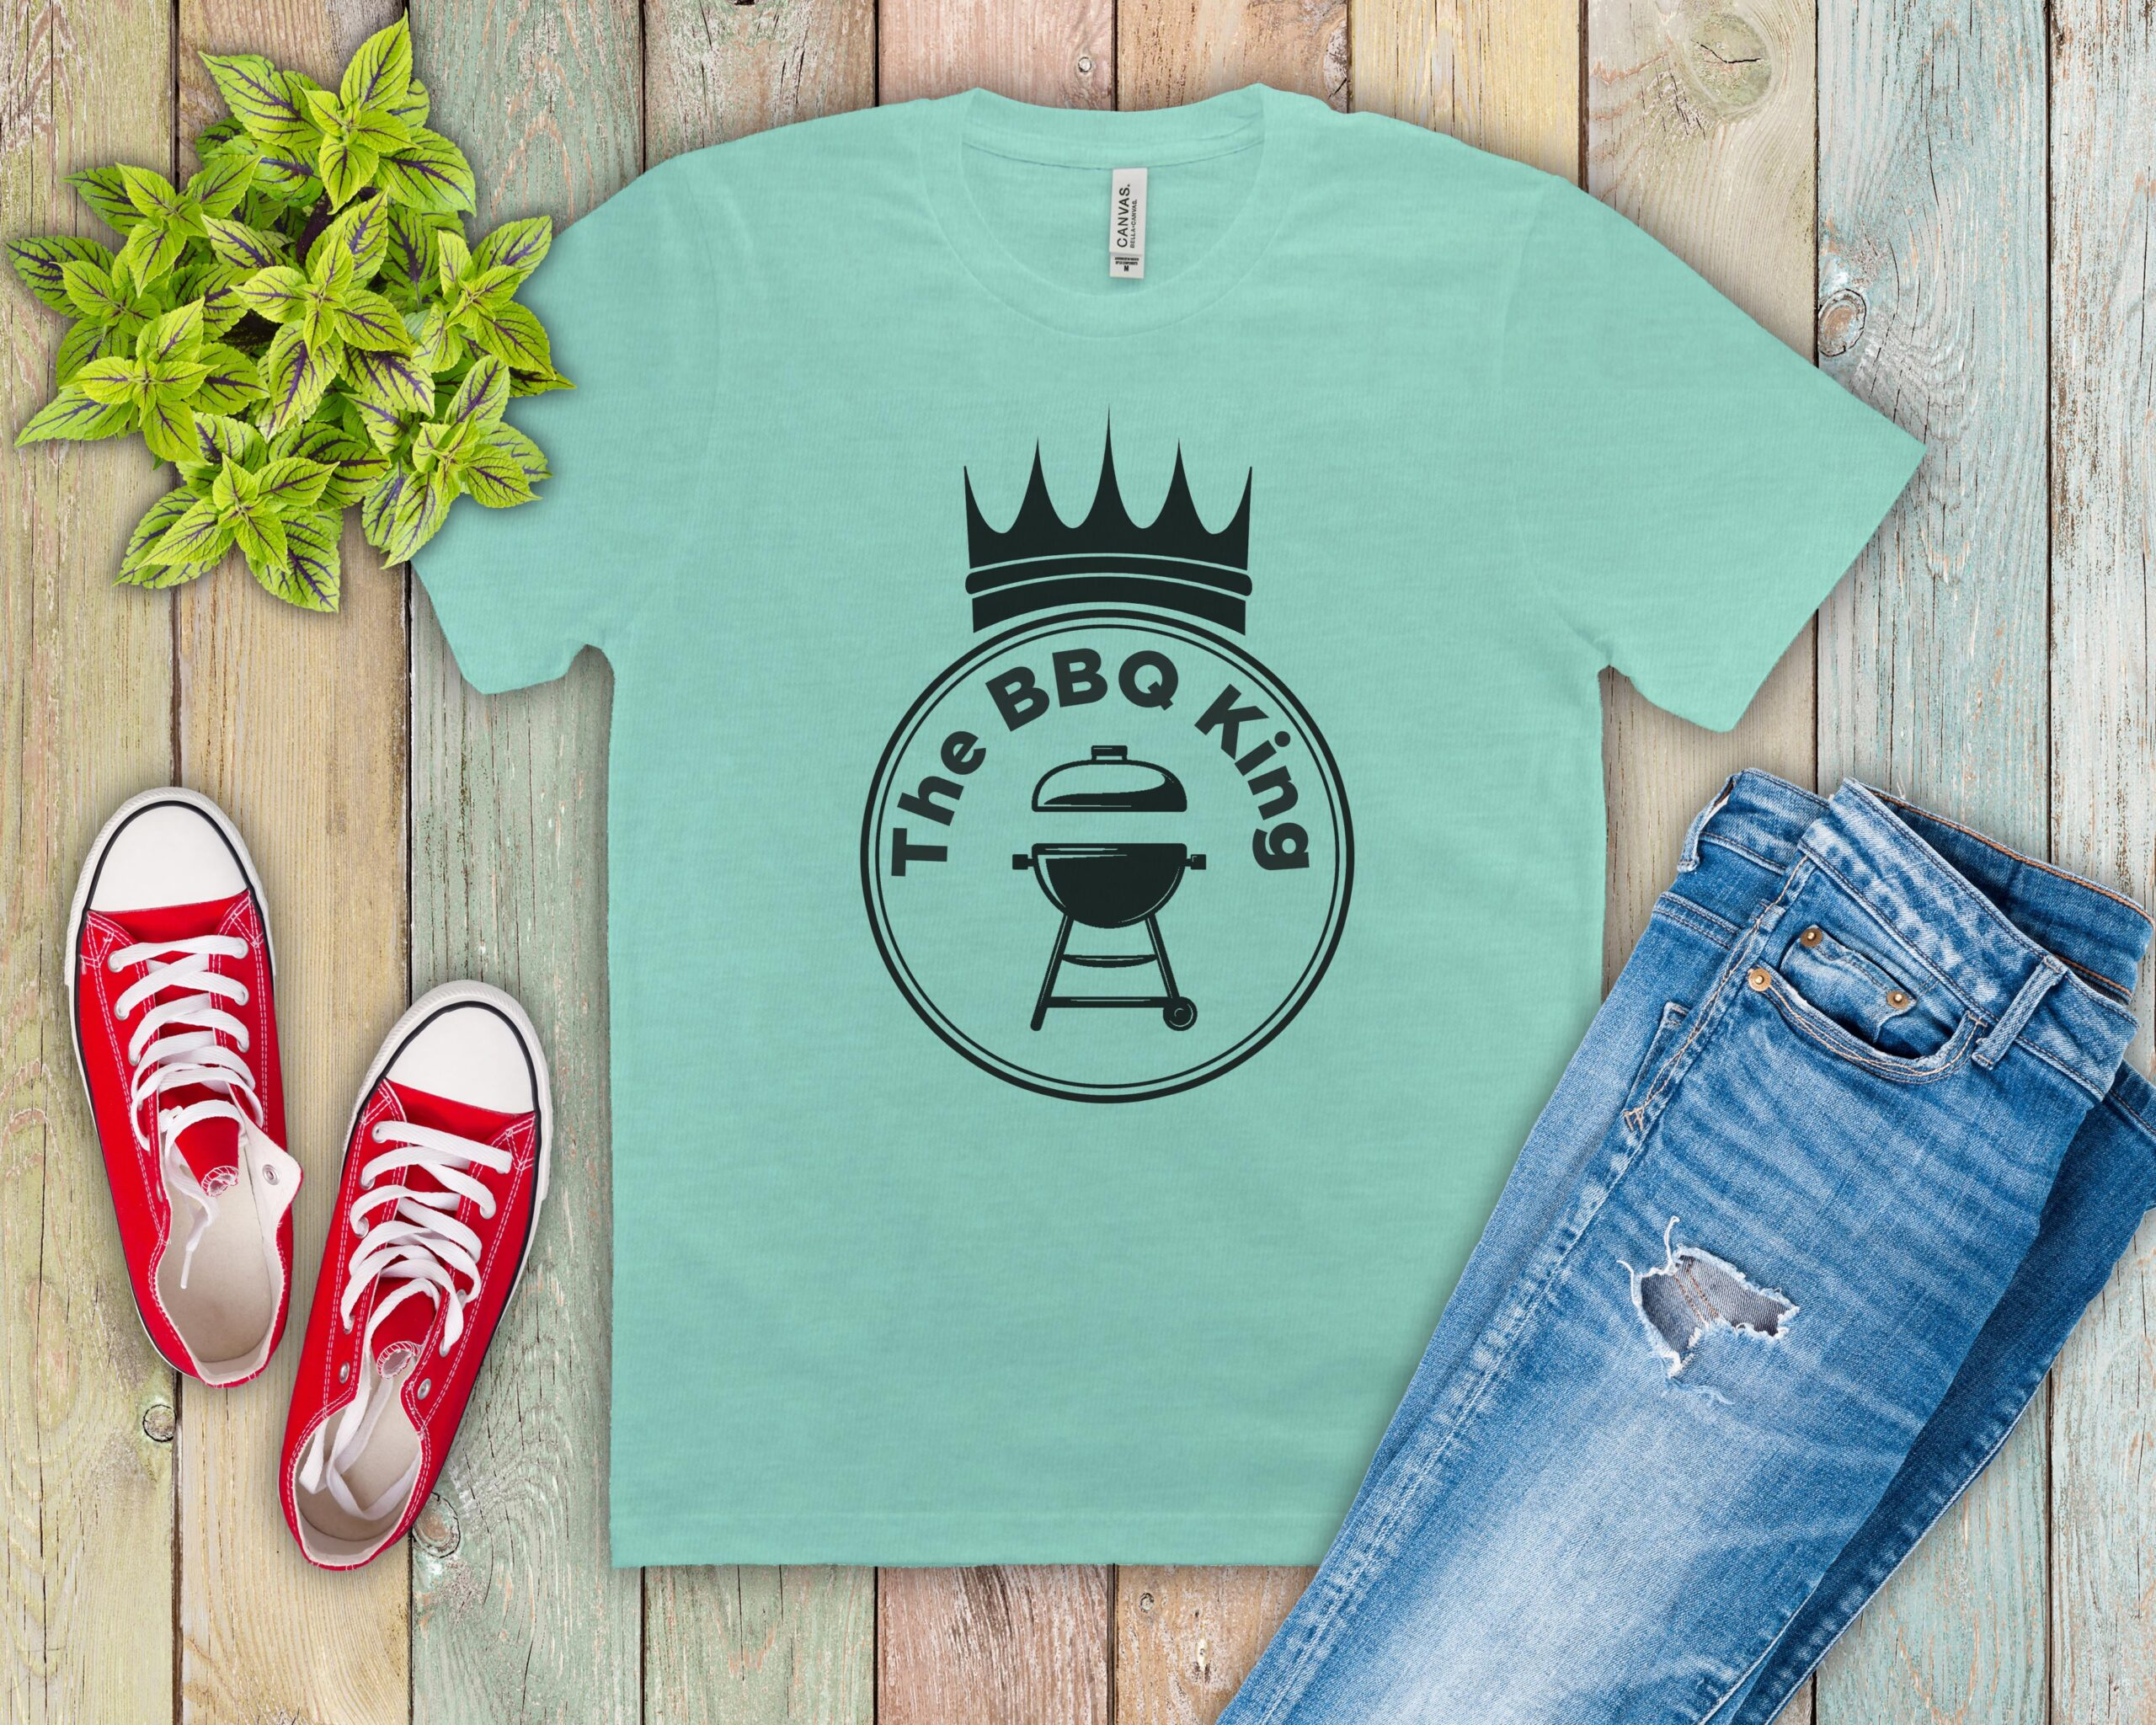 Free The BBQ King SVG File